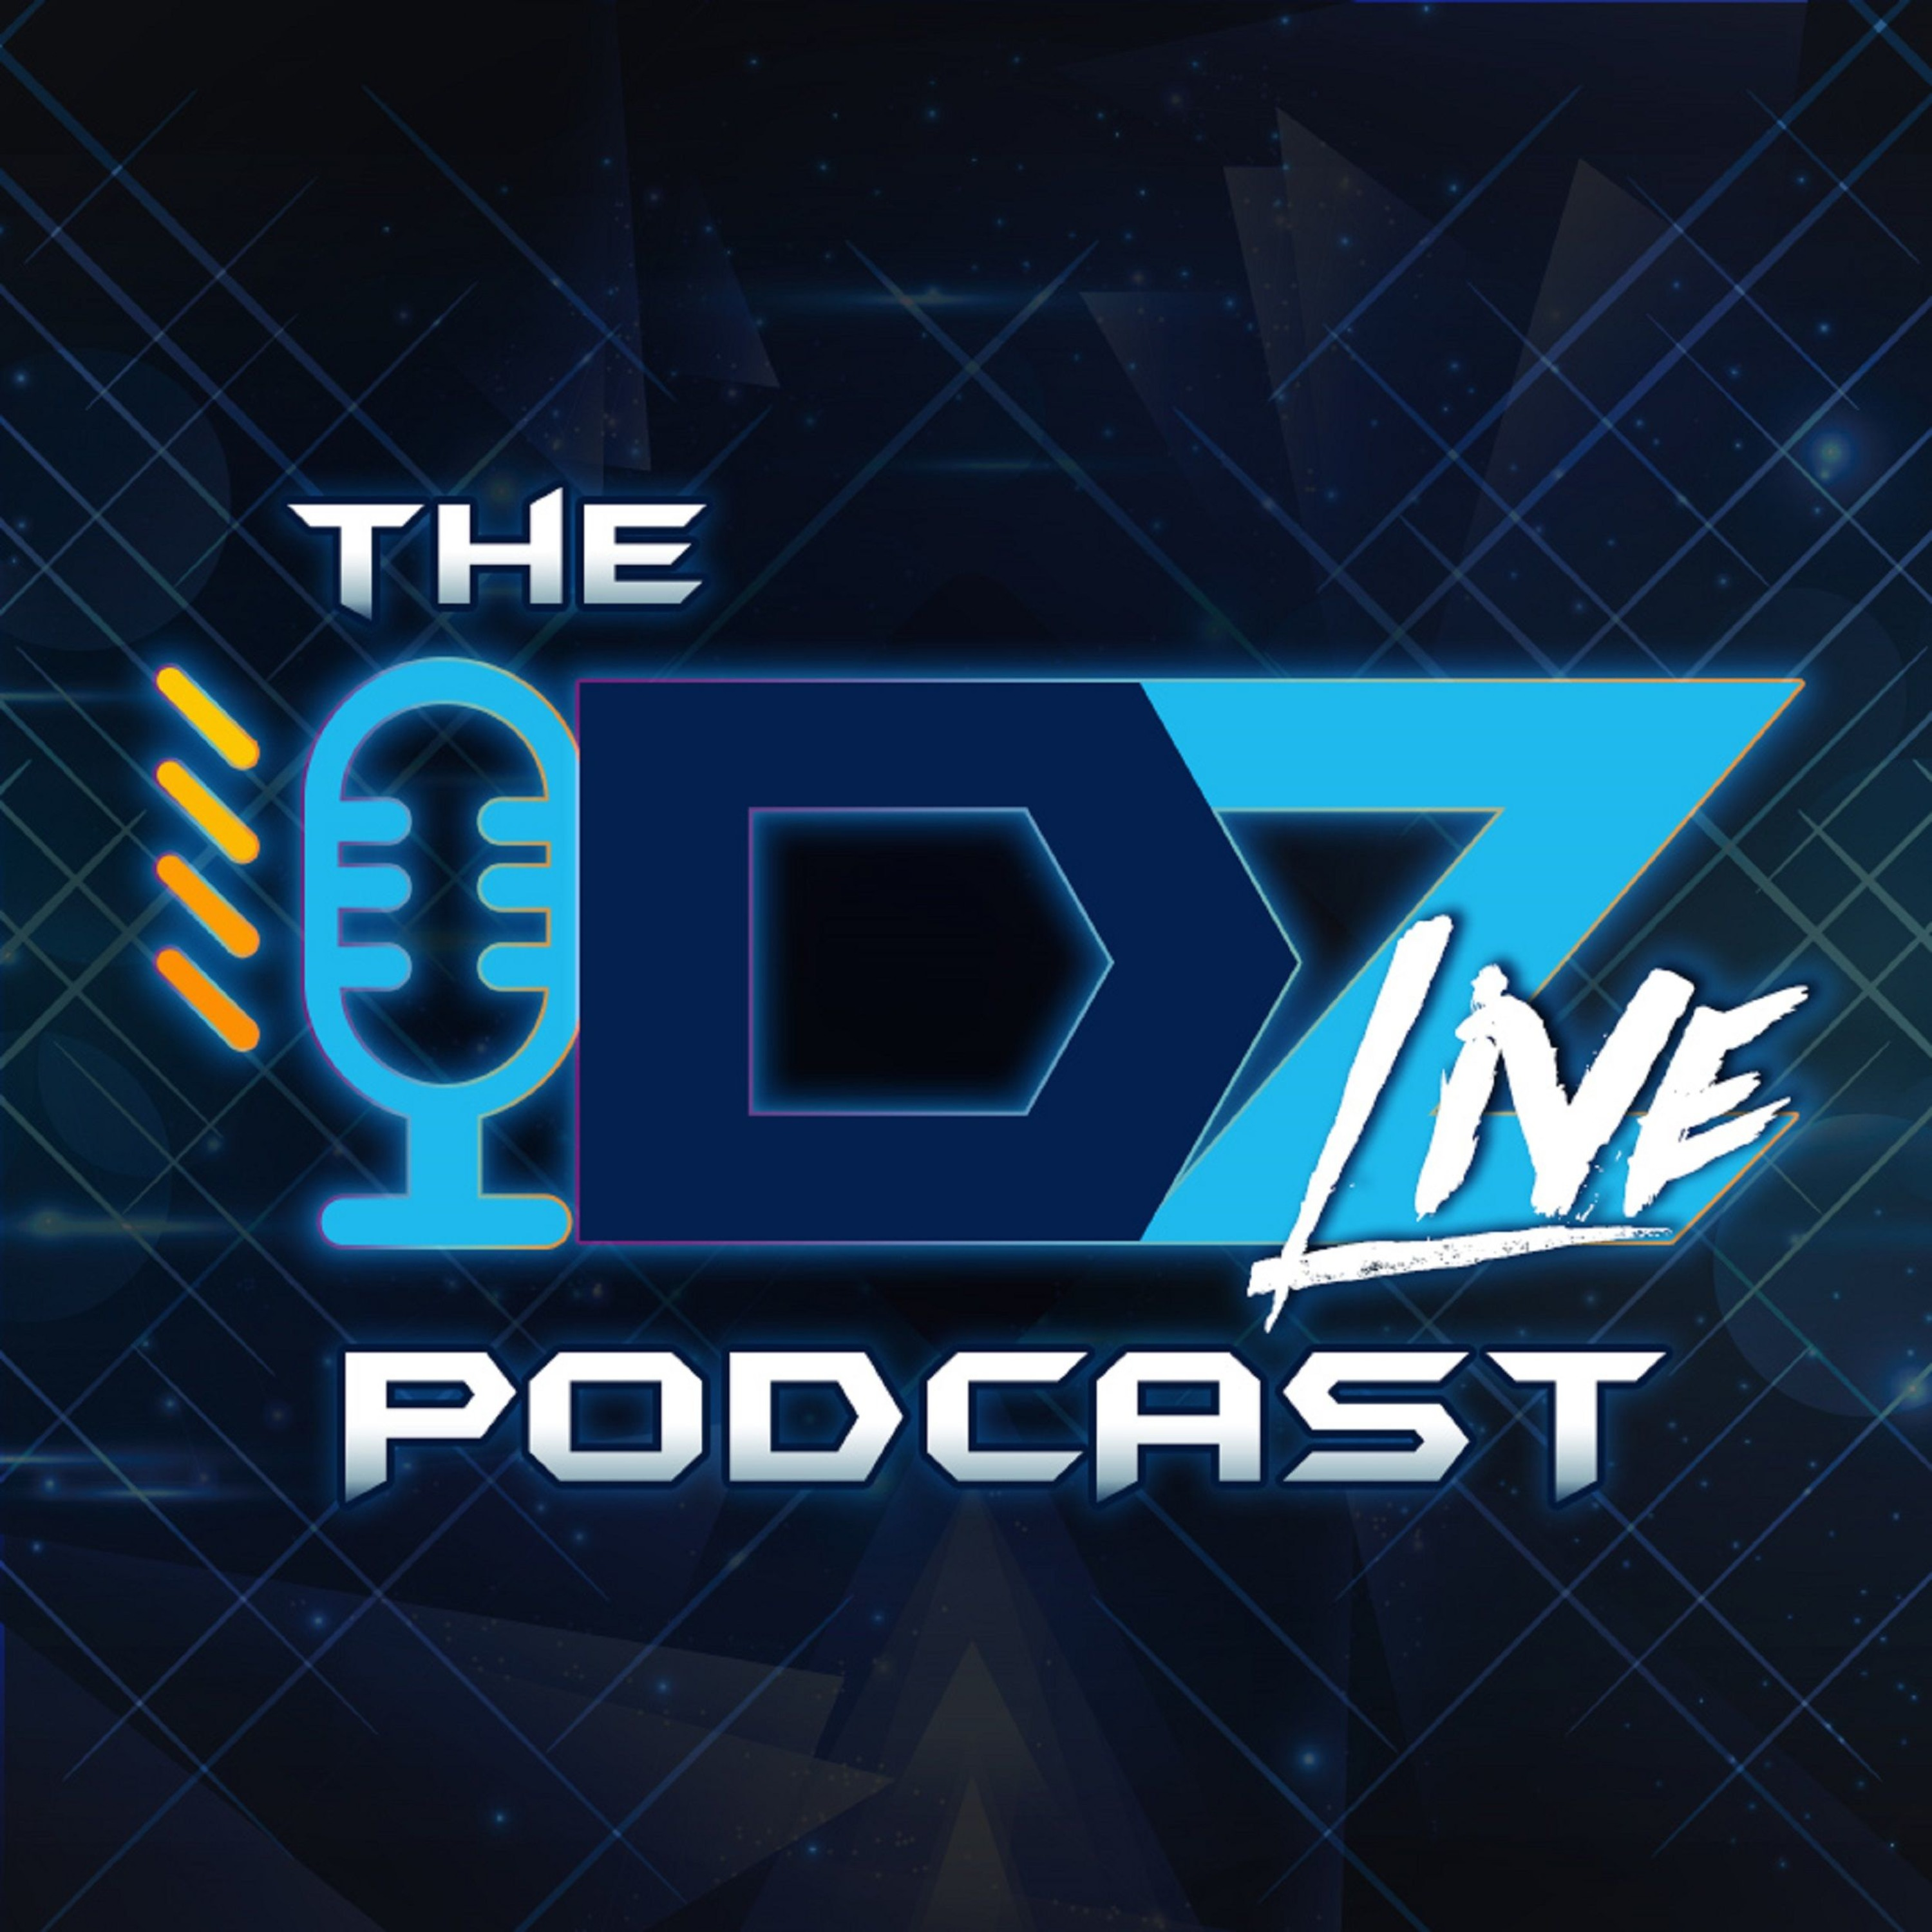 The Dz Live Podcast | Listen Free on Castbox